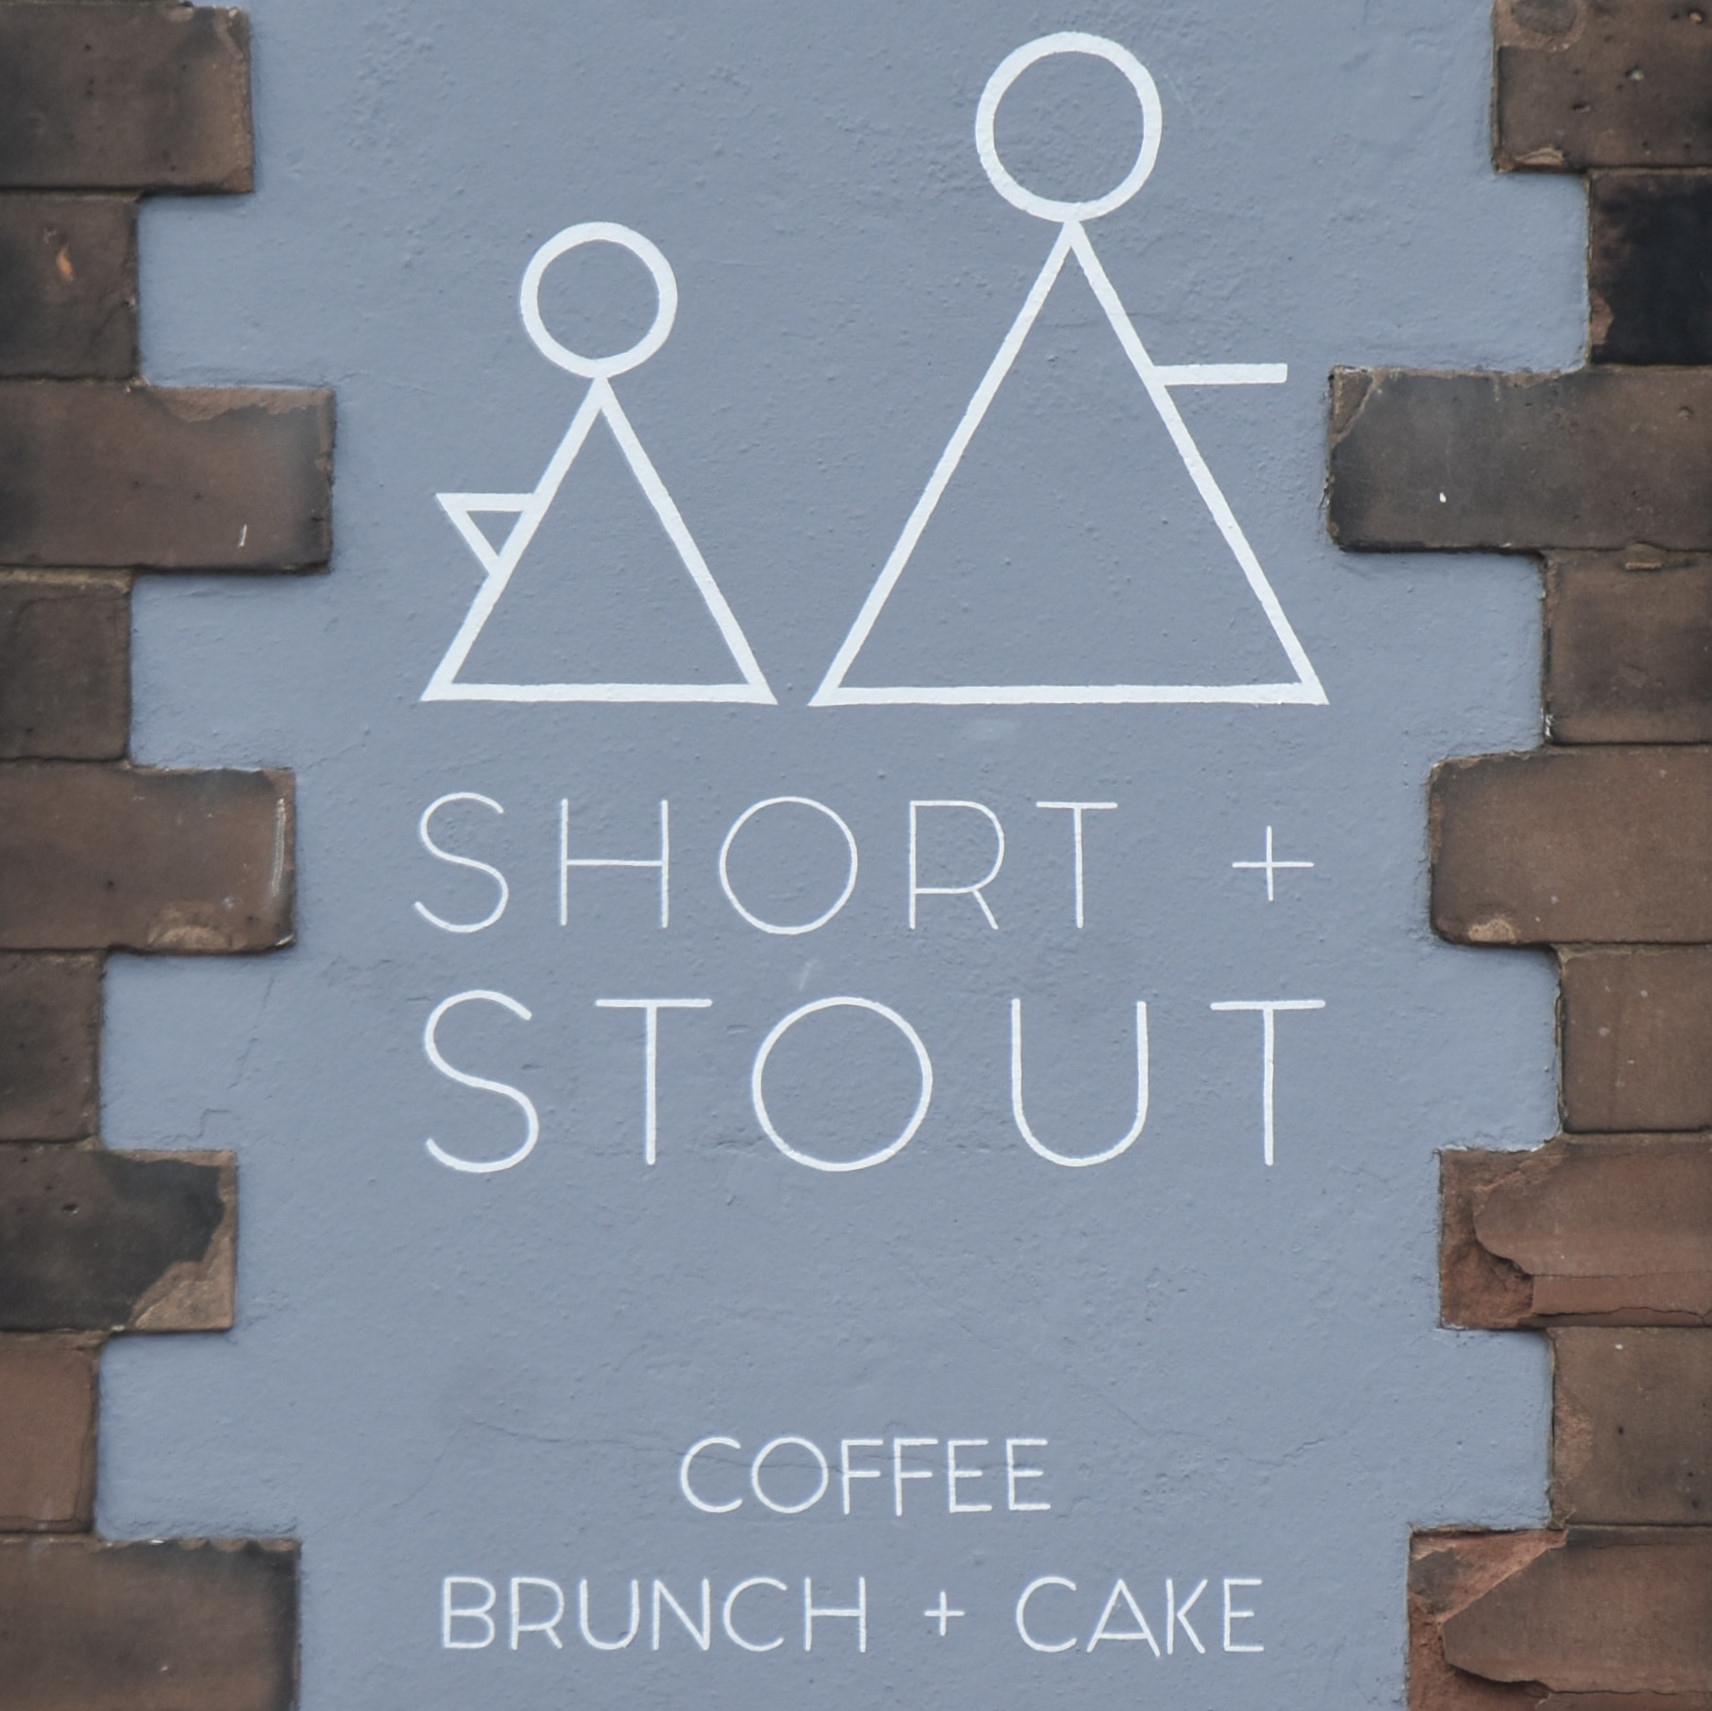 The Short + Stout logo from above the door of the shop in Hoole.